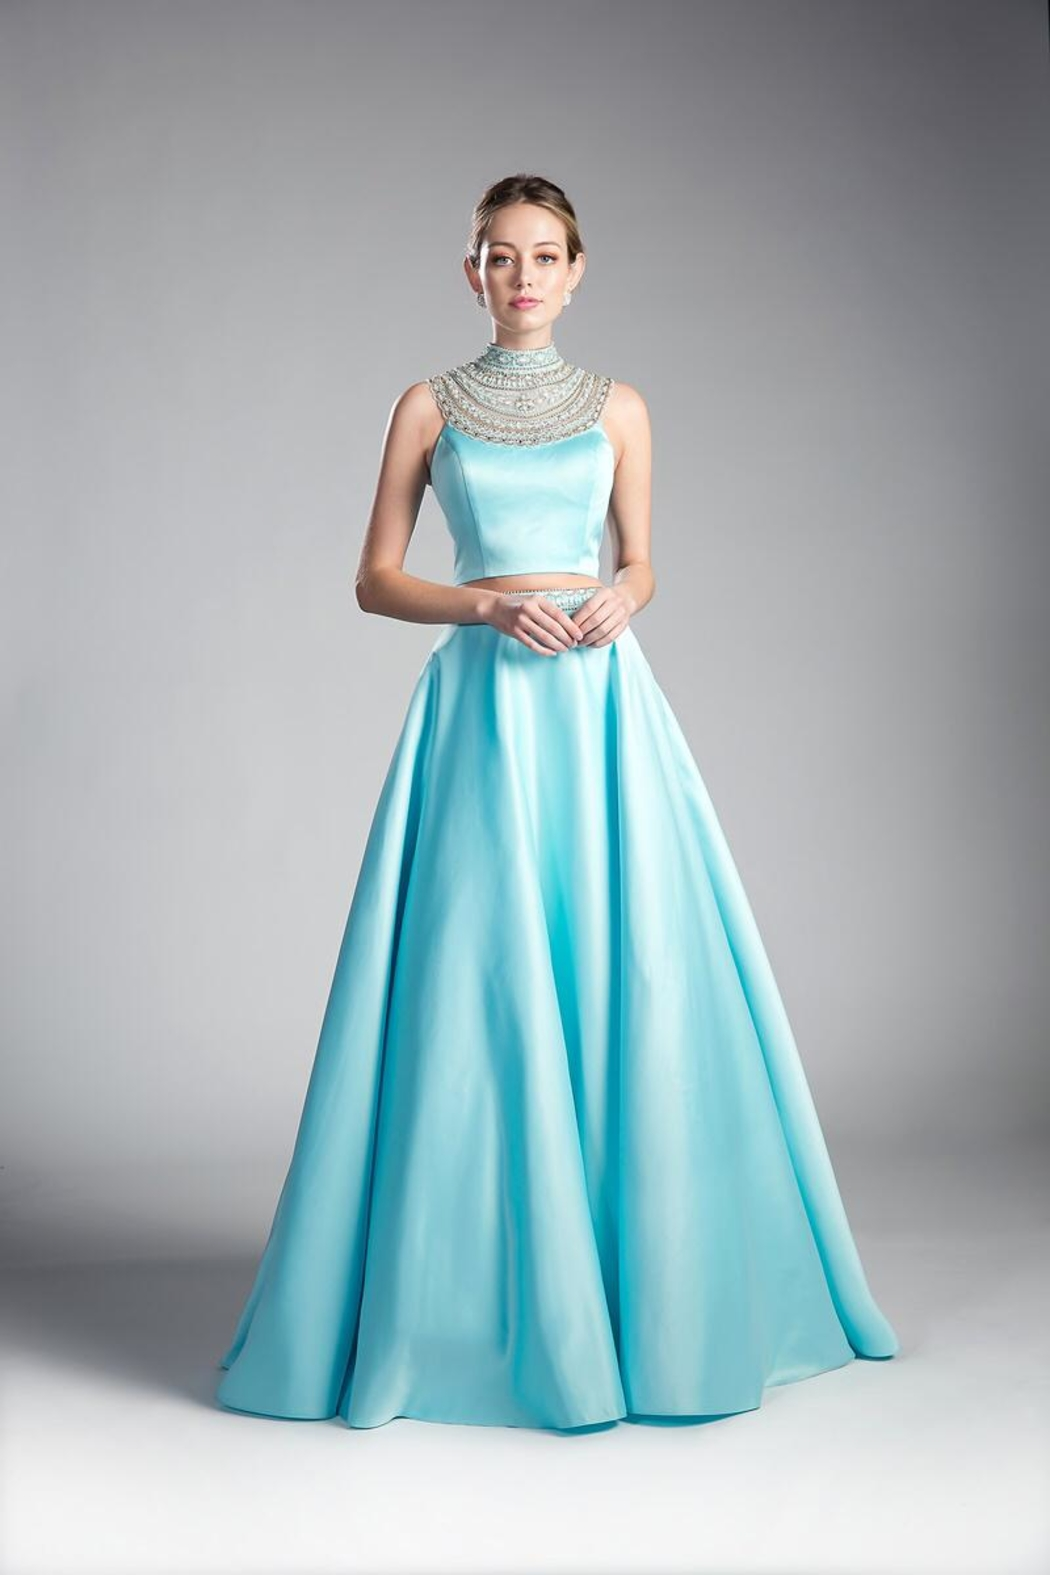 For You Dress Handmade Prom Dress from Michigan by Royal Oak Dress ...